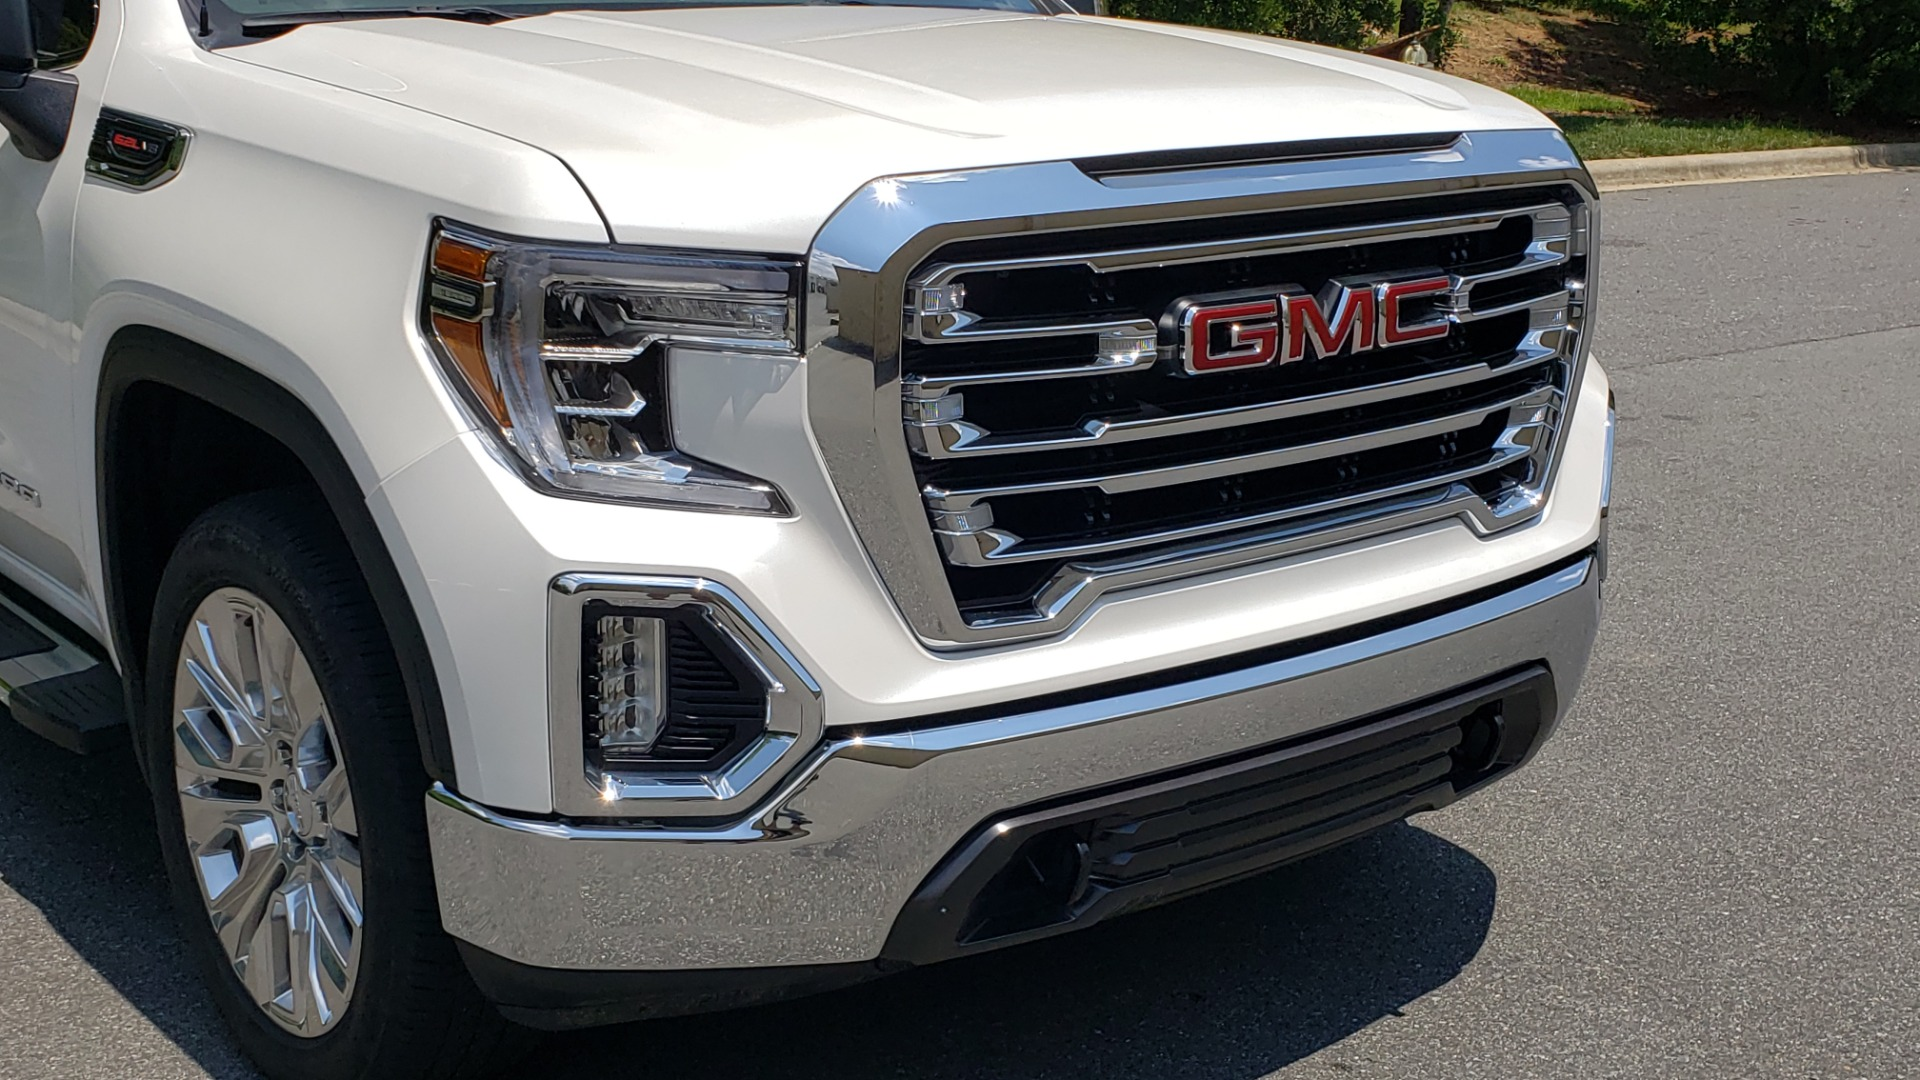 Used 2019 GMC SIERRA 1500 SLT 4WD CREWCAB / PREMIUM / 6.2L V8 / NAV / SUNROOF / VENT SEATS for sale Sold at Formula Imports in Charlotte NC 28227 27